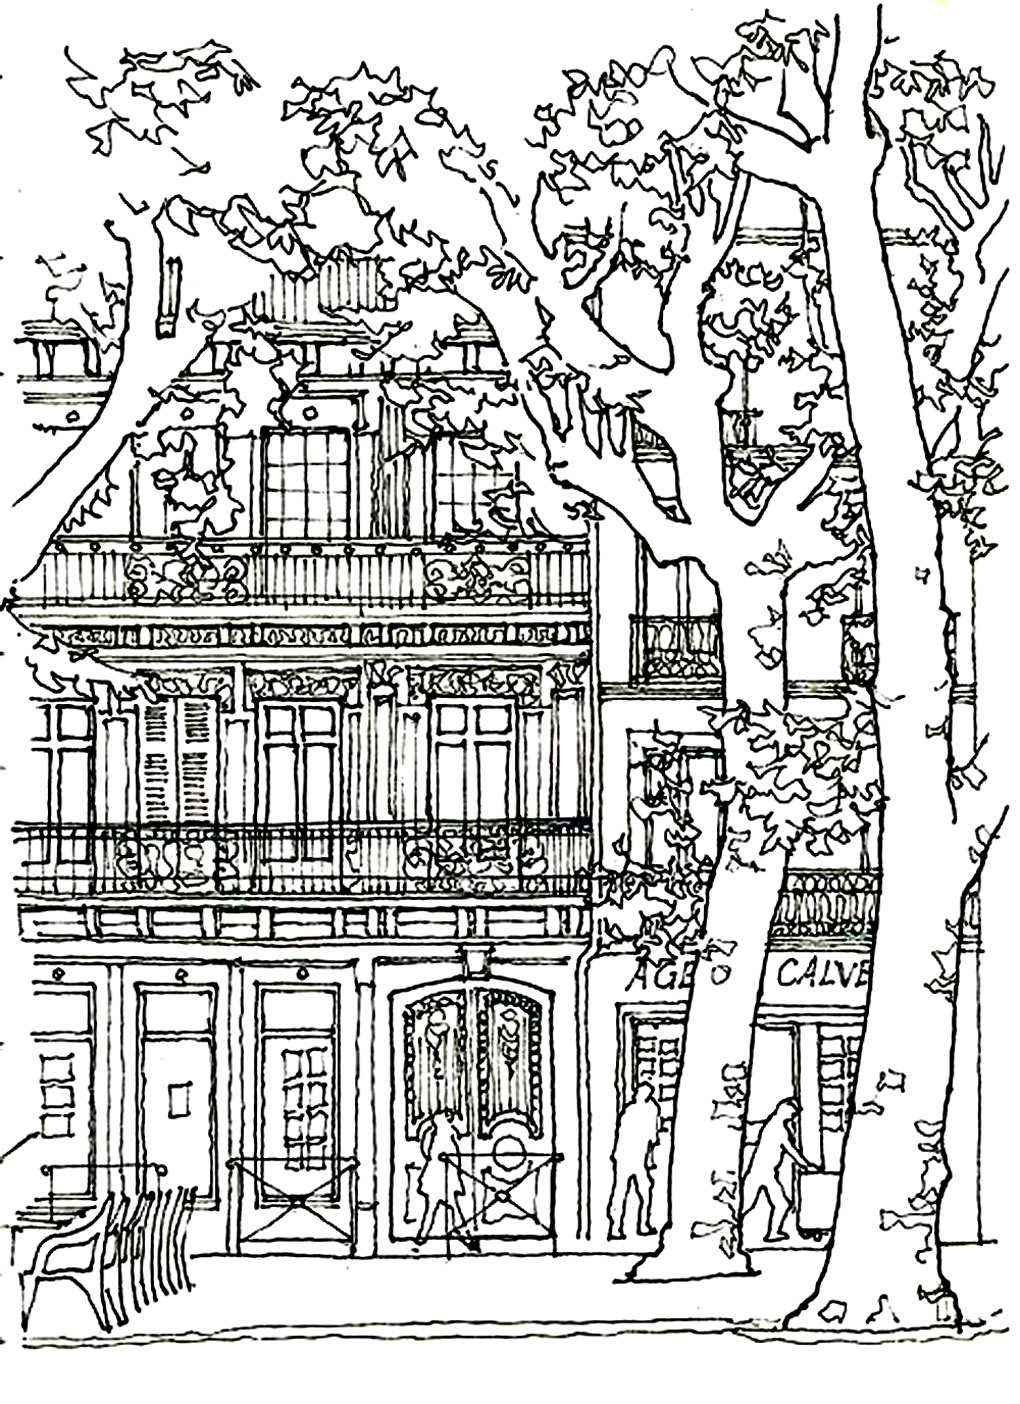 Coloring page architecture house tree harmony between habitation vegetation